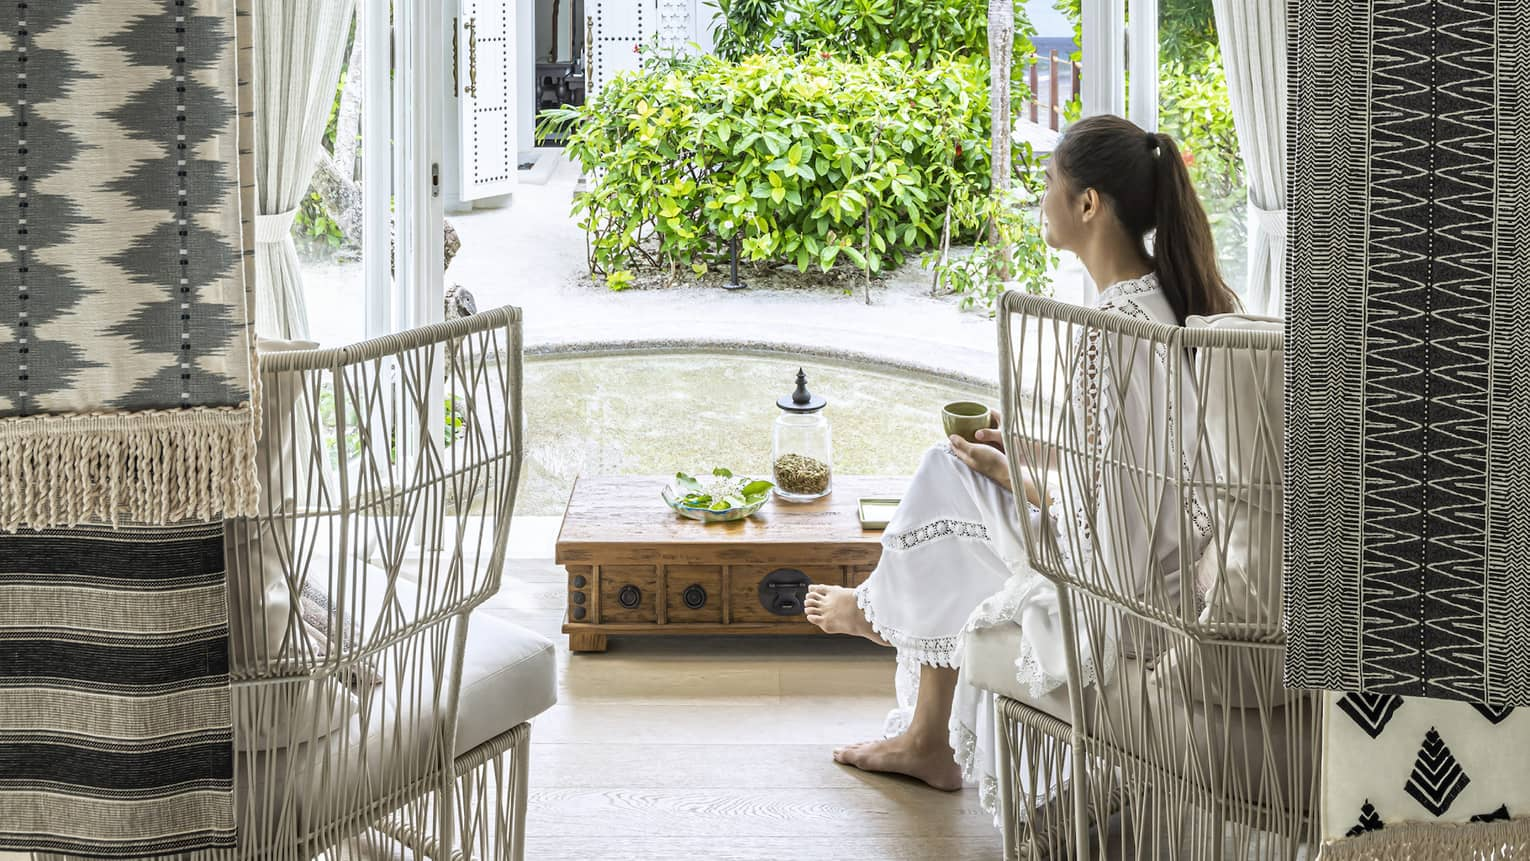 A woman sits in white wicker chair in the four seasons maldives spa waiting area and overlooks the garden outside an opened window